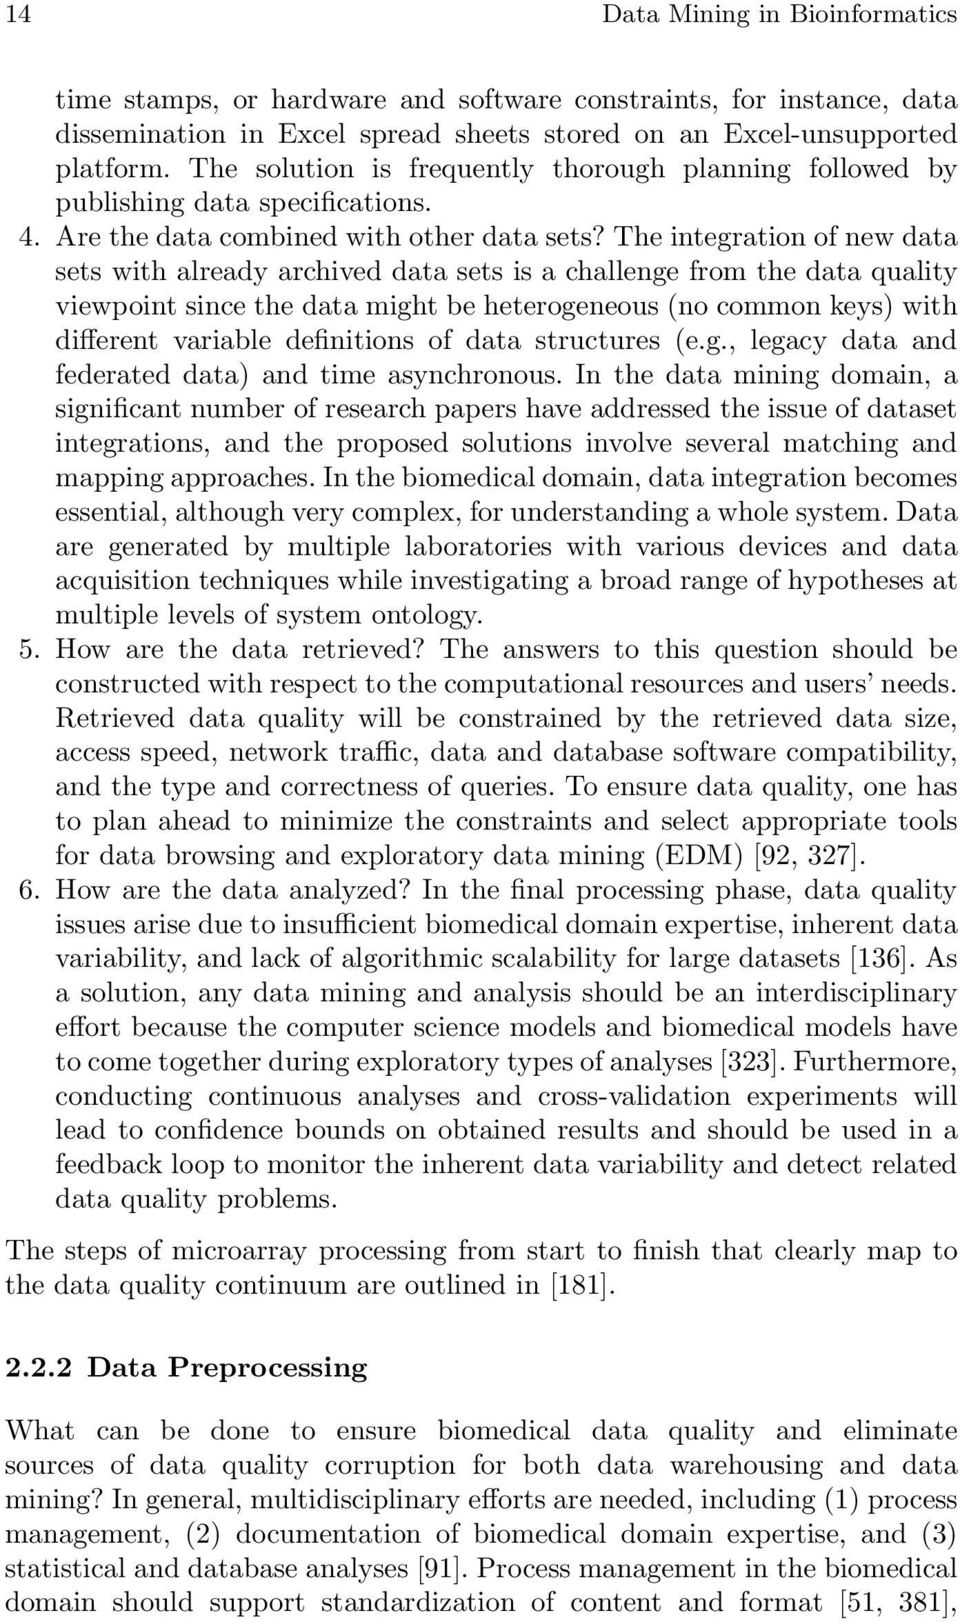 The integration of new data sets with already archived data sets is a challenge from the data quality viewpoint since the data might be heterogeneous (no common keys) with different variable